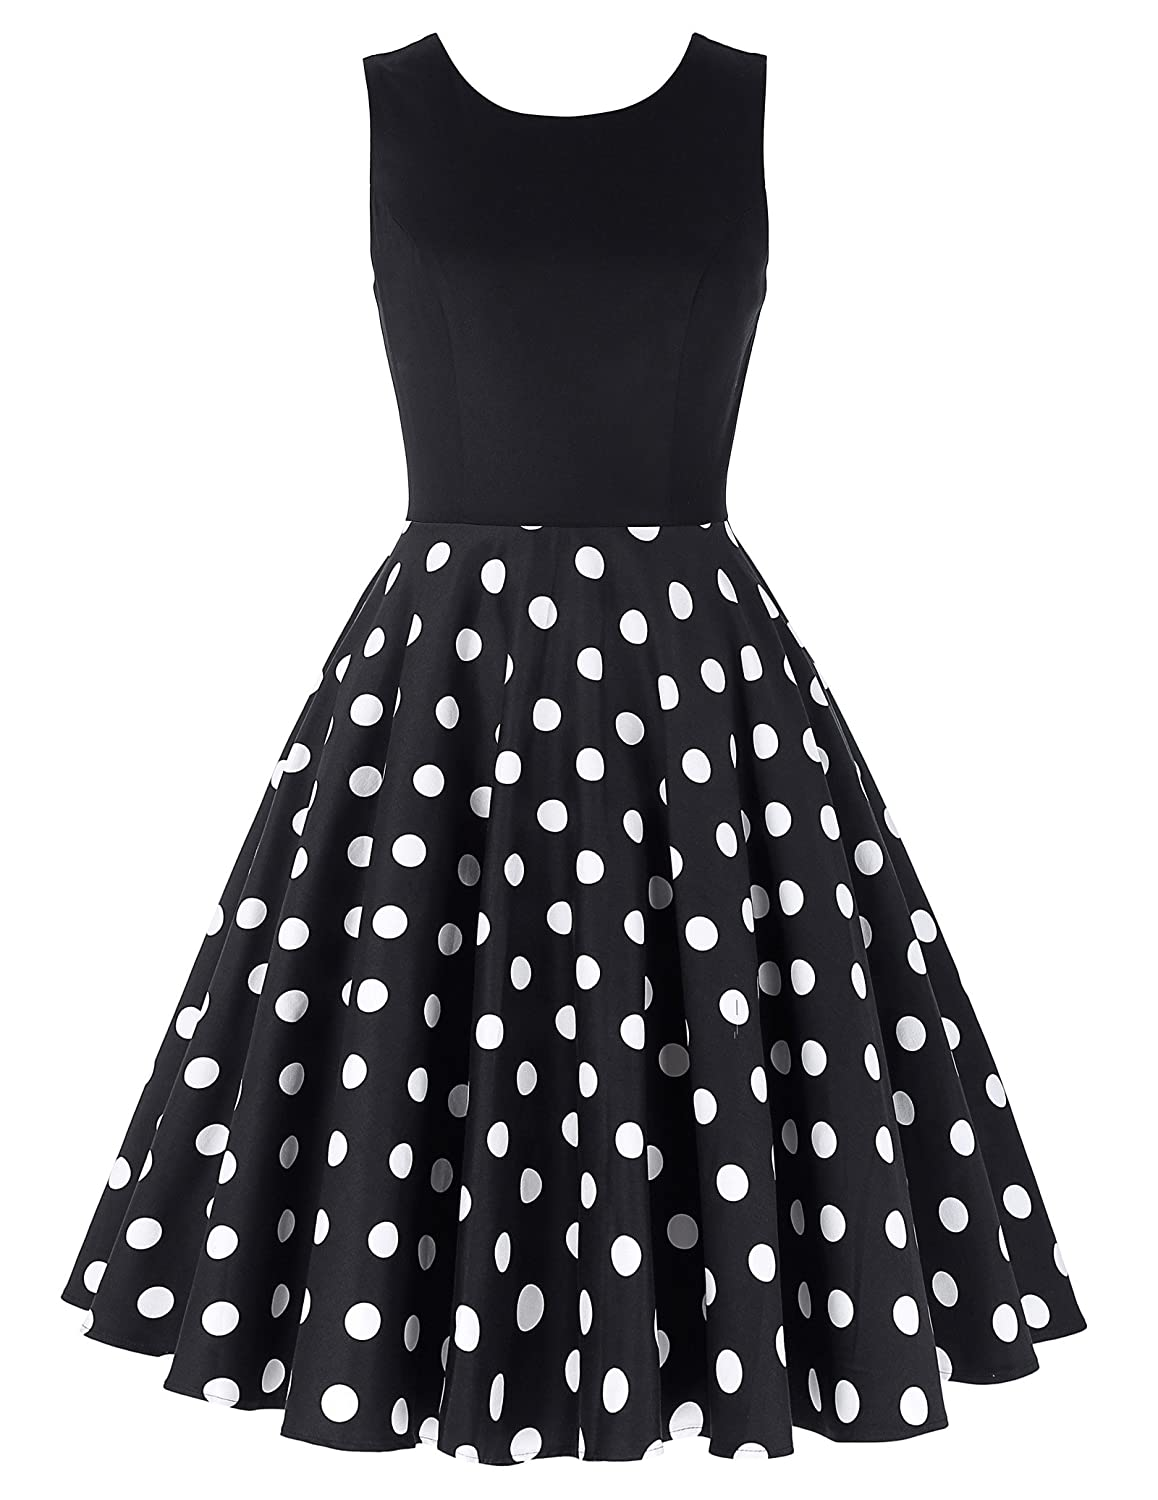 Rockabilly Dresses | Rockabilly Clothing | Viva Las Vegas GRACE KARIN Boatneck Sleeveless Vintage Tea Dress Belt $30.99 AT vintagedancer.com